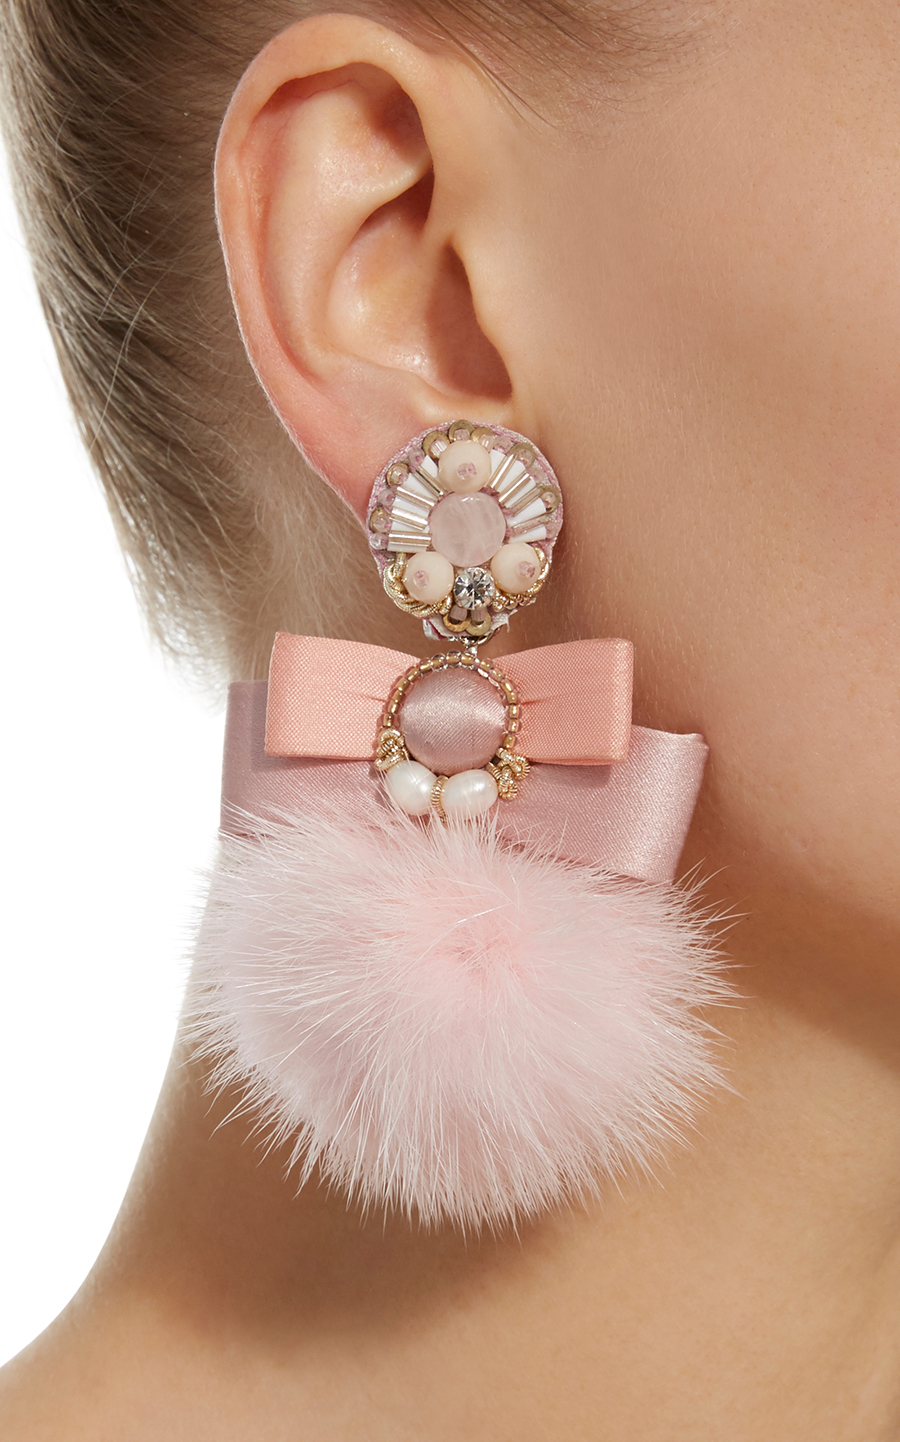 Pale Pink Fur Pom Ranjana Khan Earrings Stylish clip on earrings